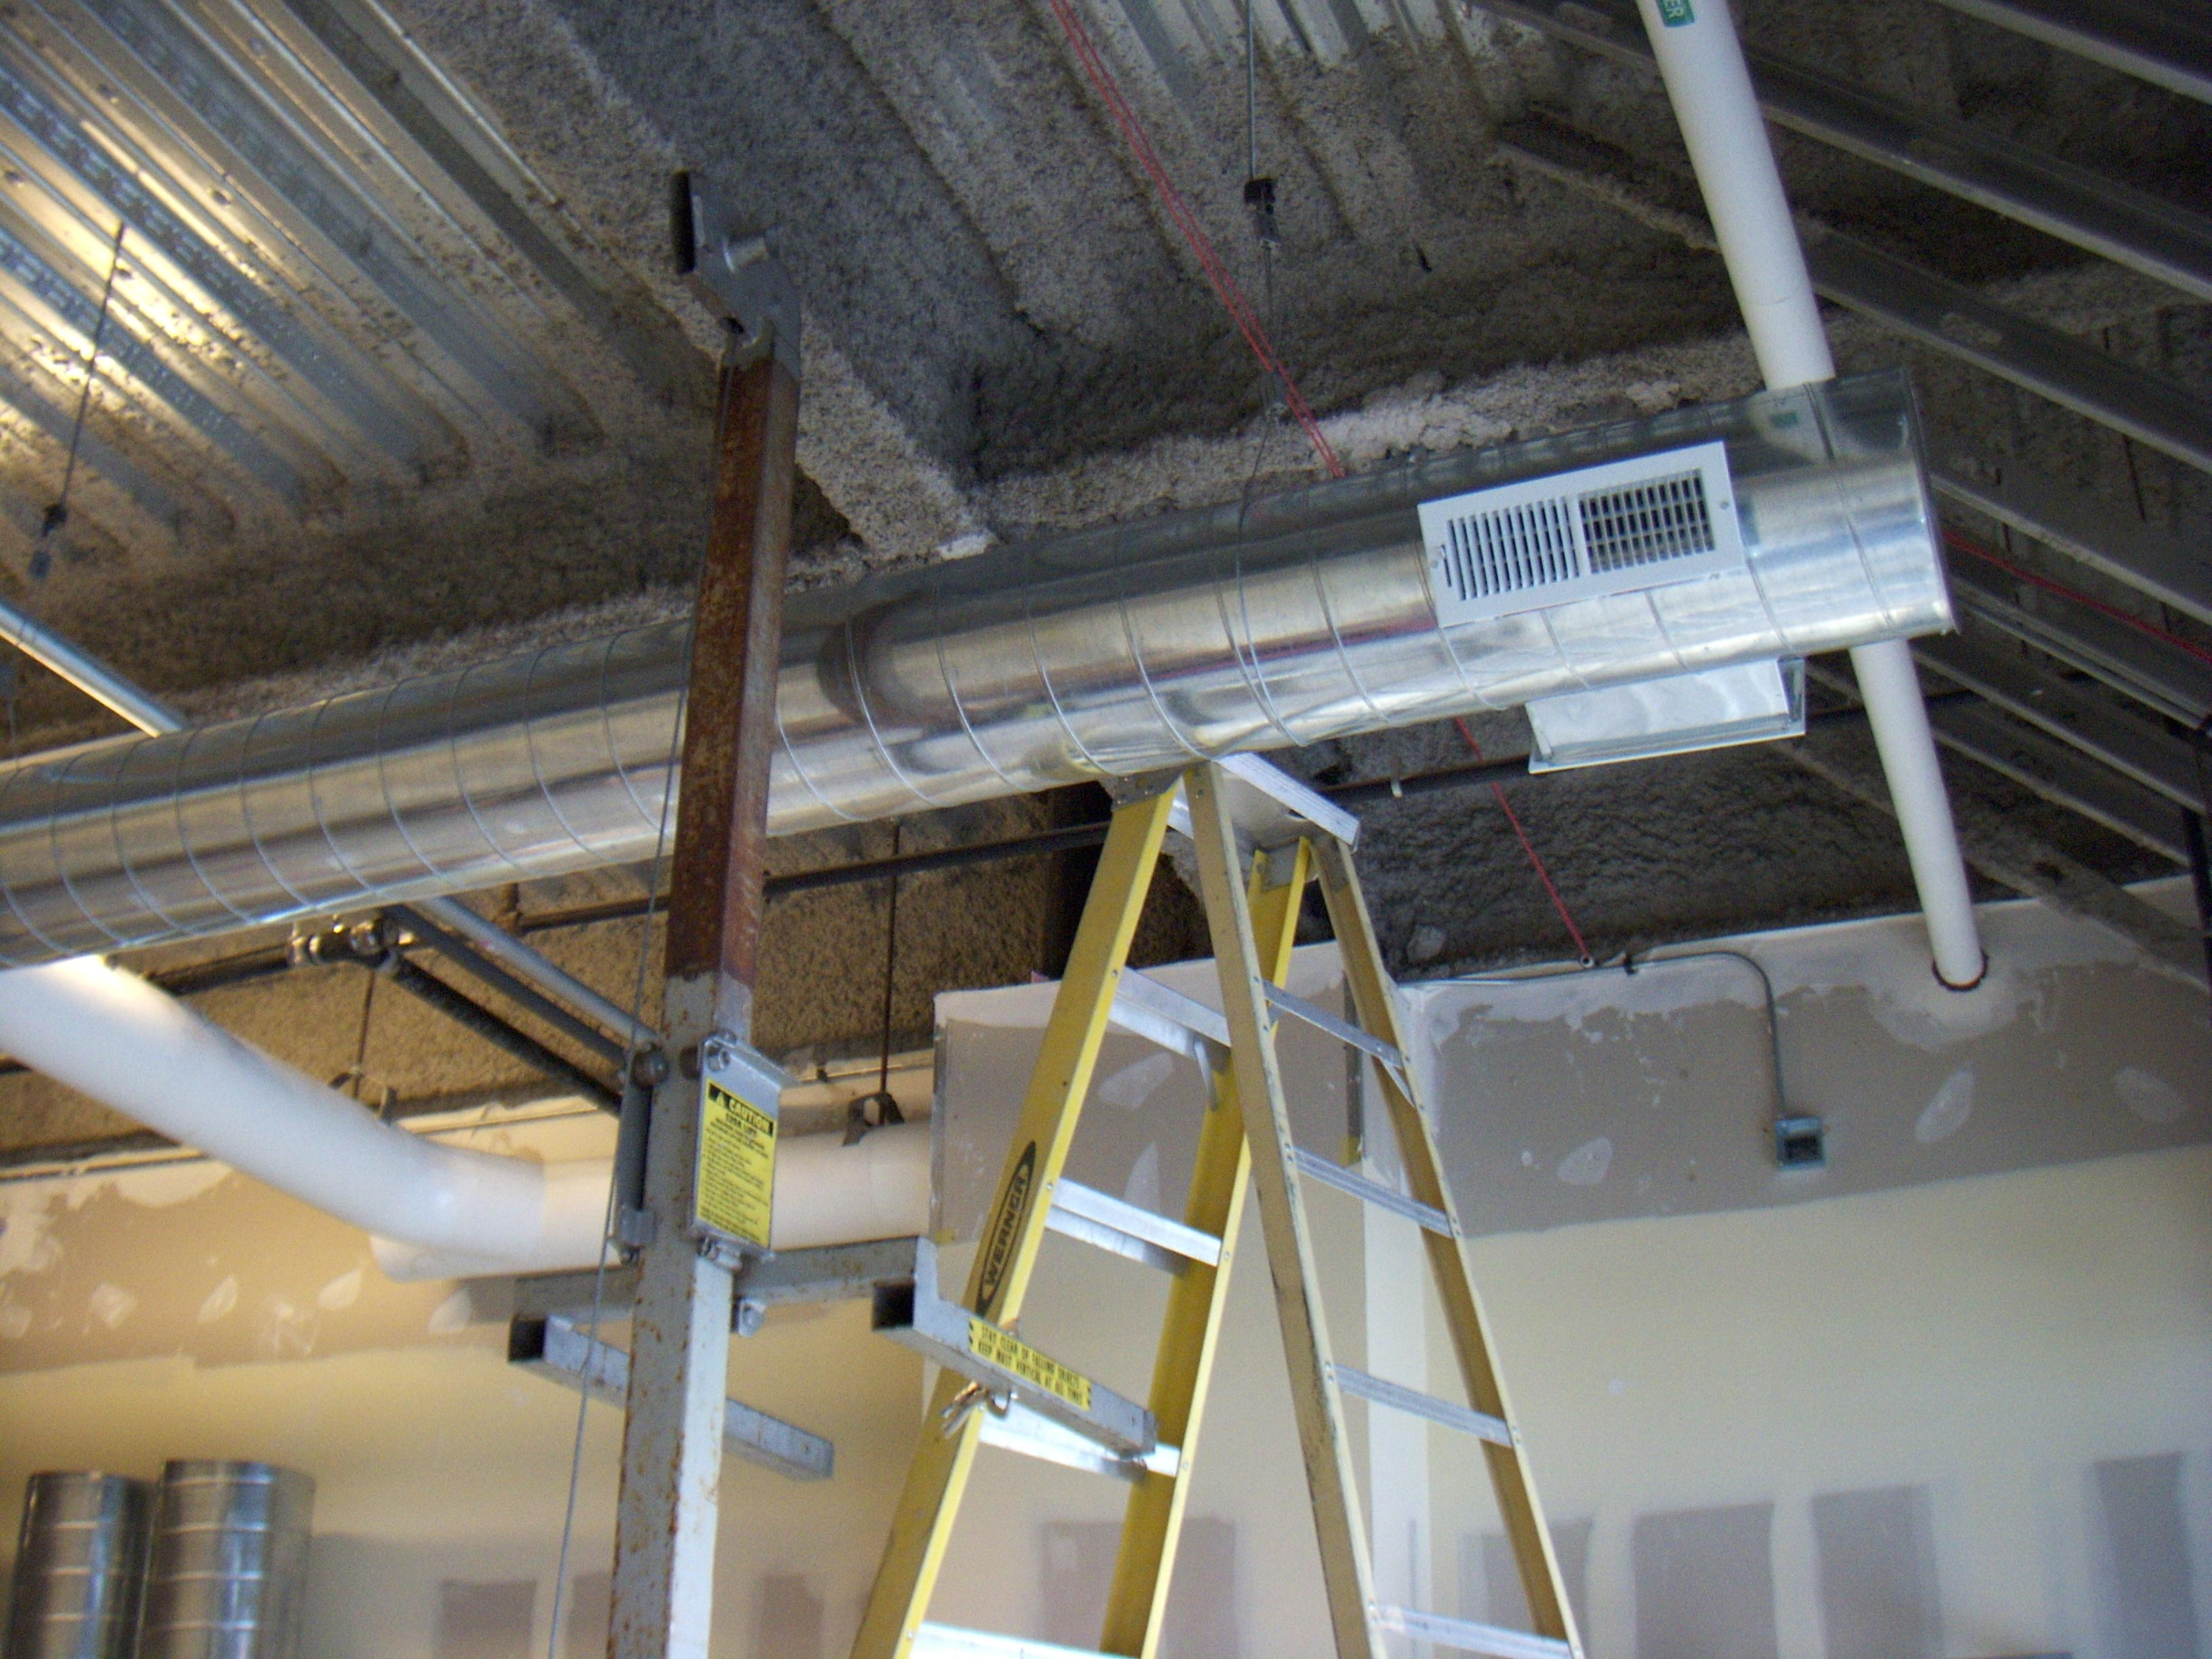 Installation of new spiral duct work in a retail commercial space